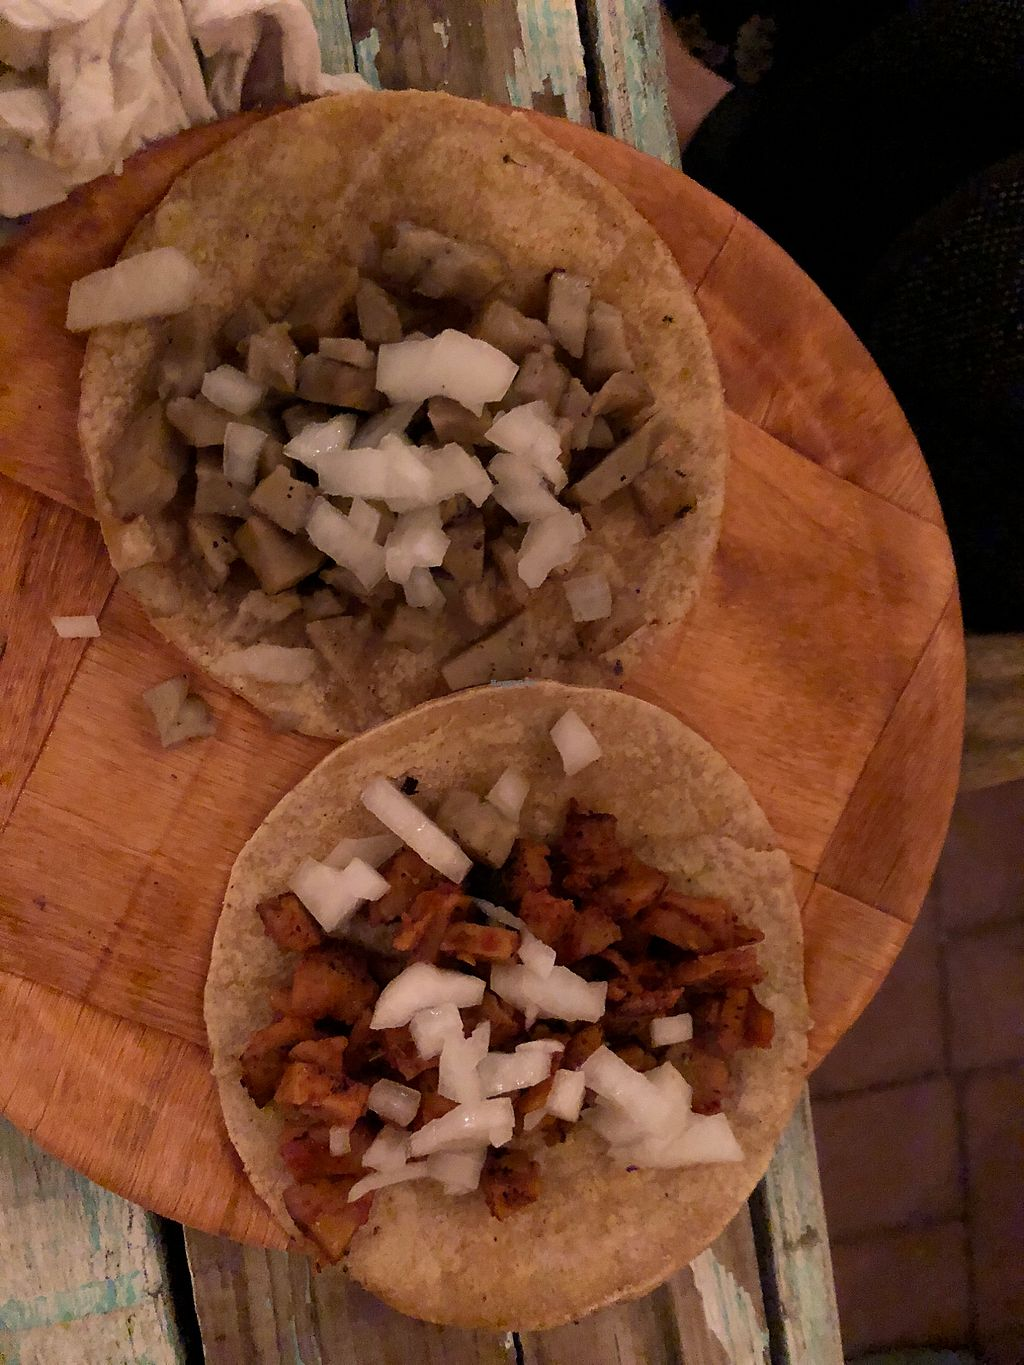 """Photo of La Rana Vegana  by <a href=""""/members/profile/RyanPamplin"""">RyanPamplin</a> <br/>Asada and Pastor Tacos - excellent with verde salsa <br/> January 21, 2018  - <a href='/contact/abuse/image/83802/349492'>Report</a>"""